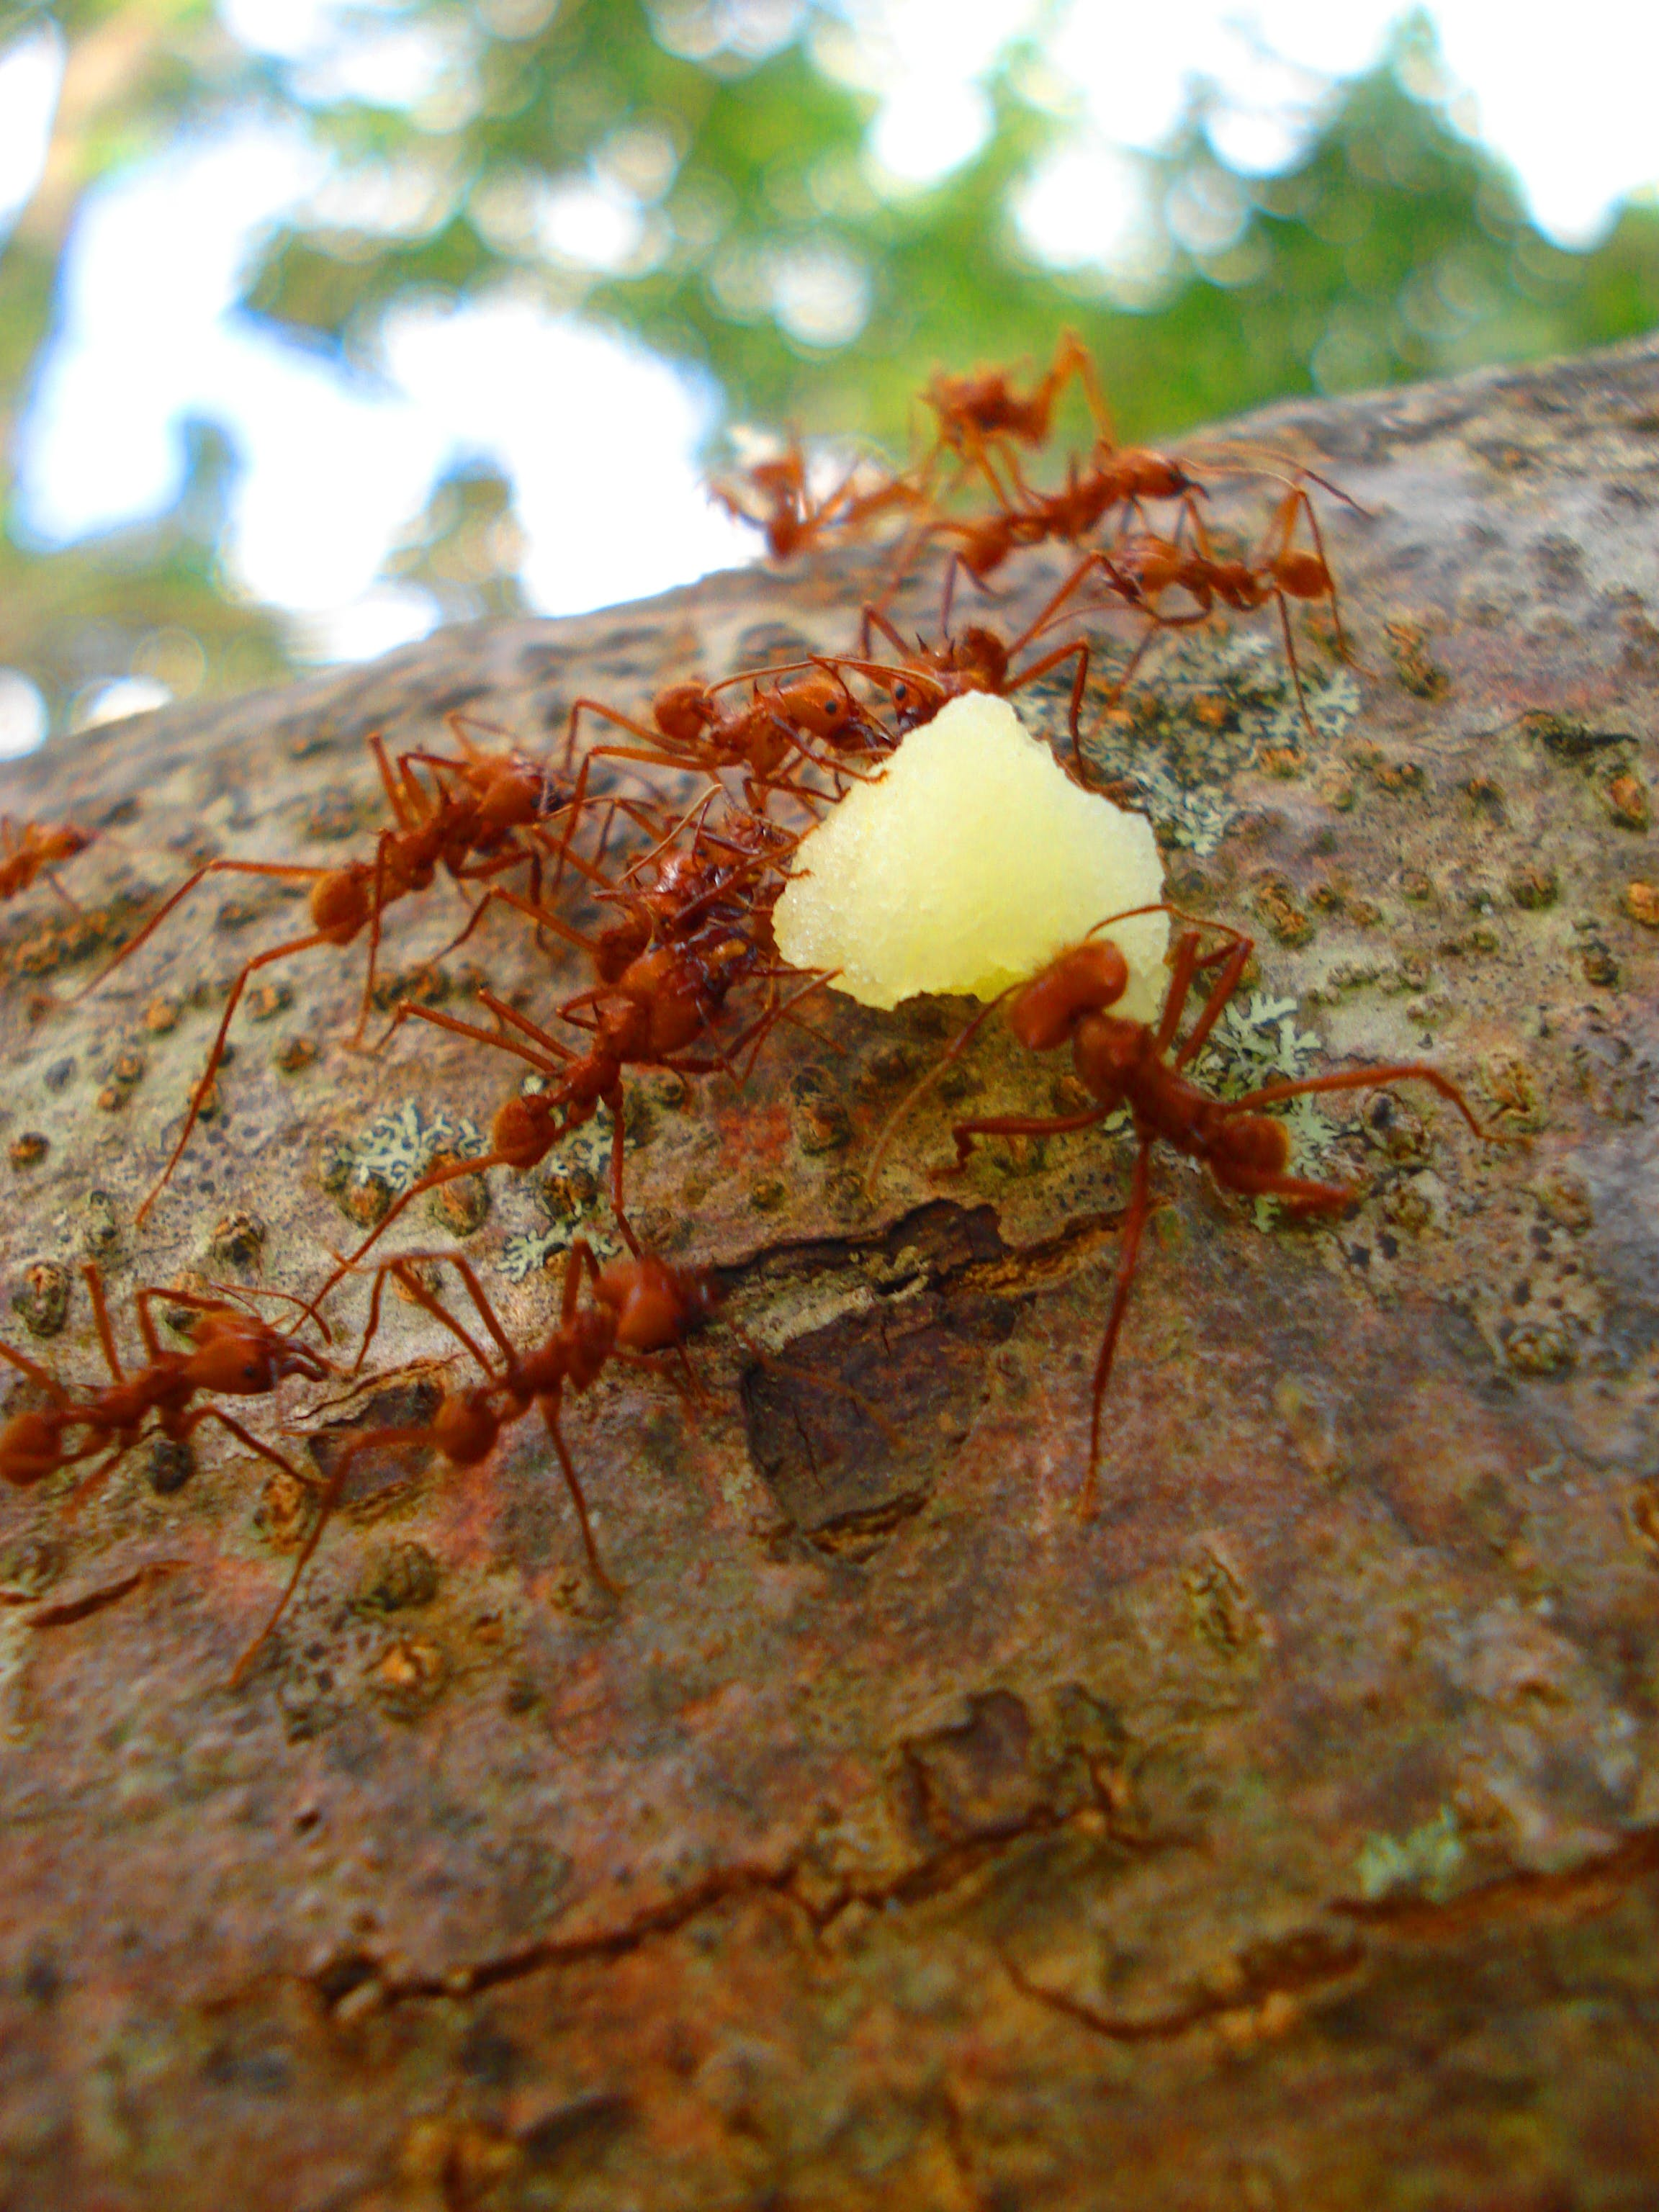 Free stock photo of ants, nature, red ants